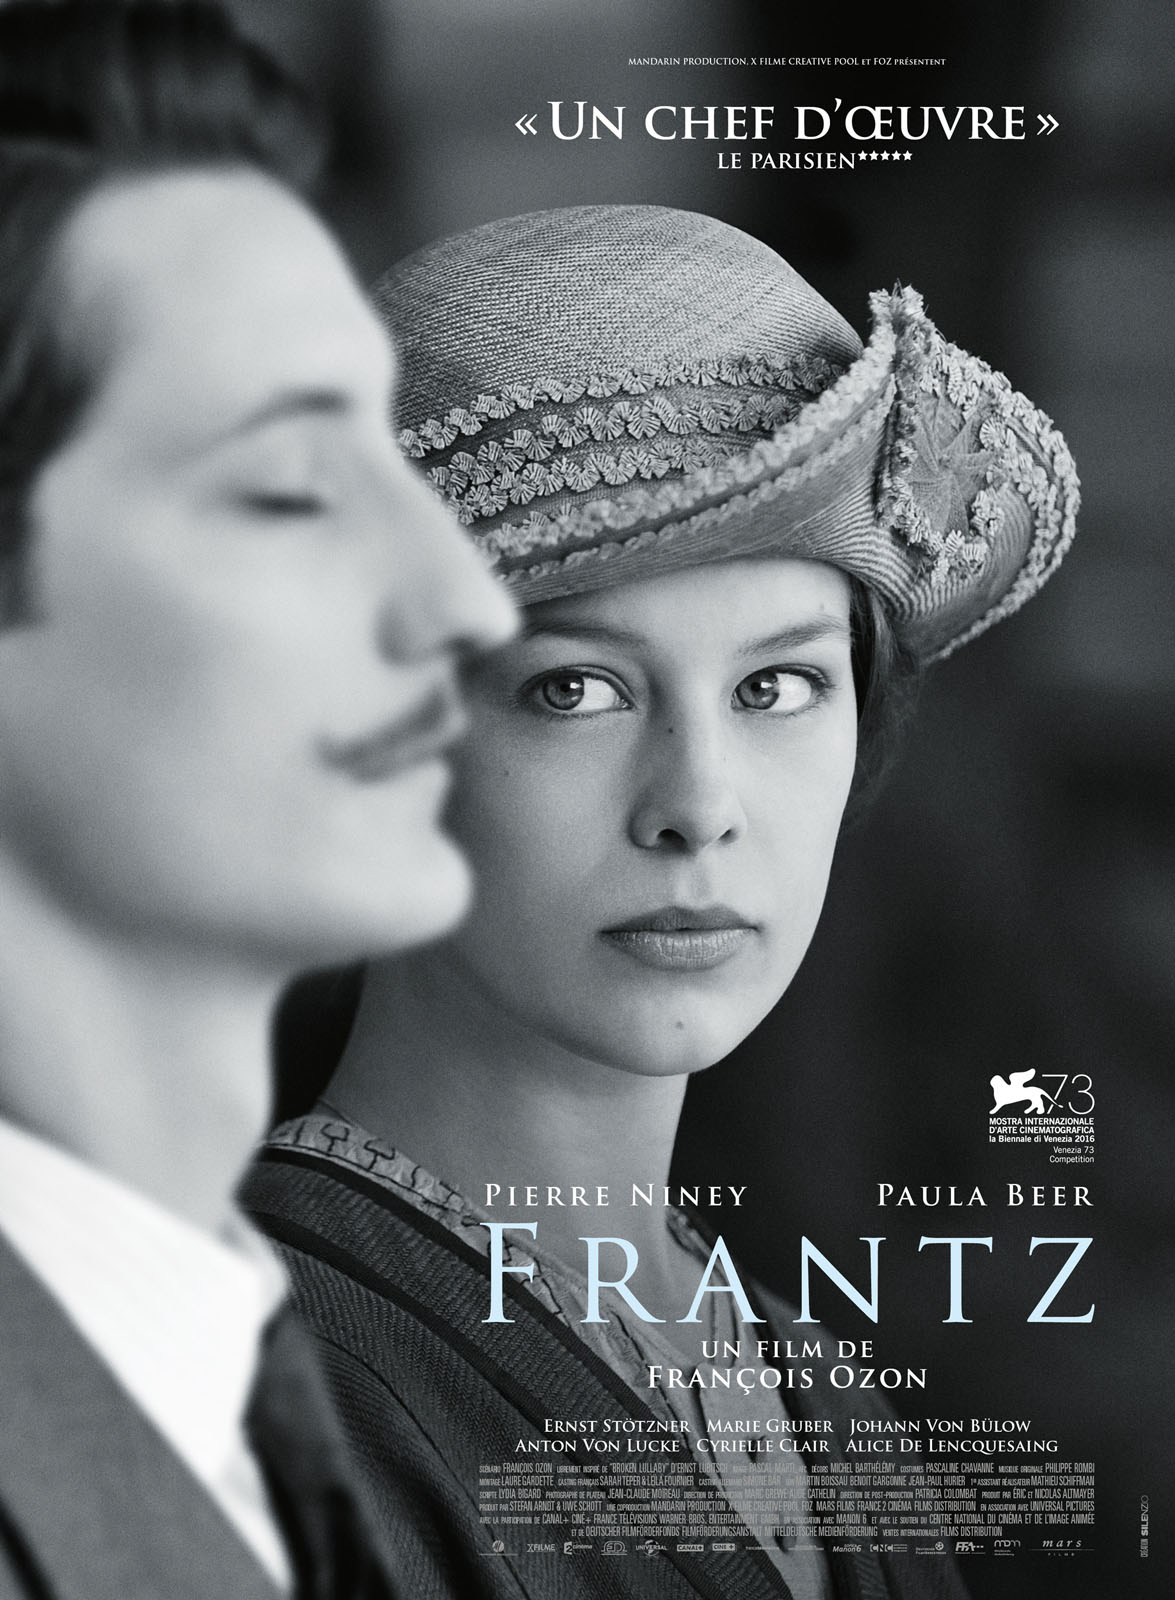 François Ozon throughout frantz - film 2016 - allociné